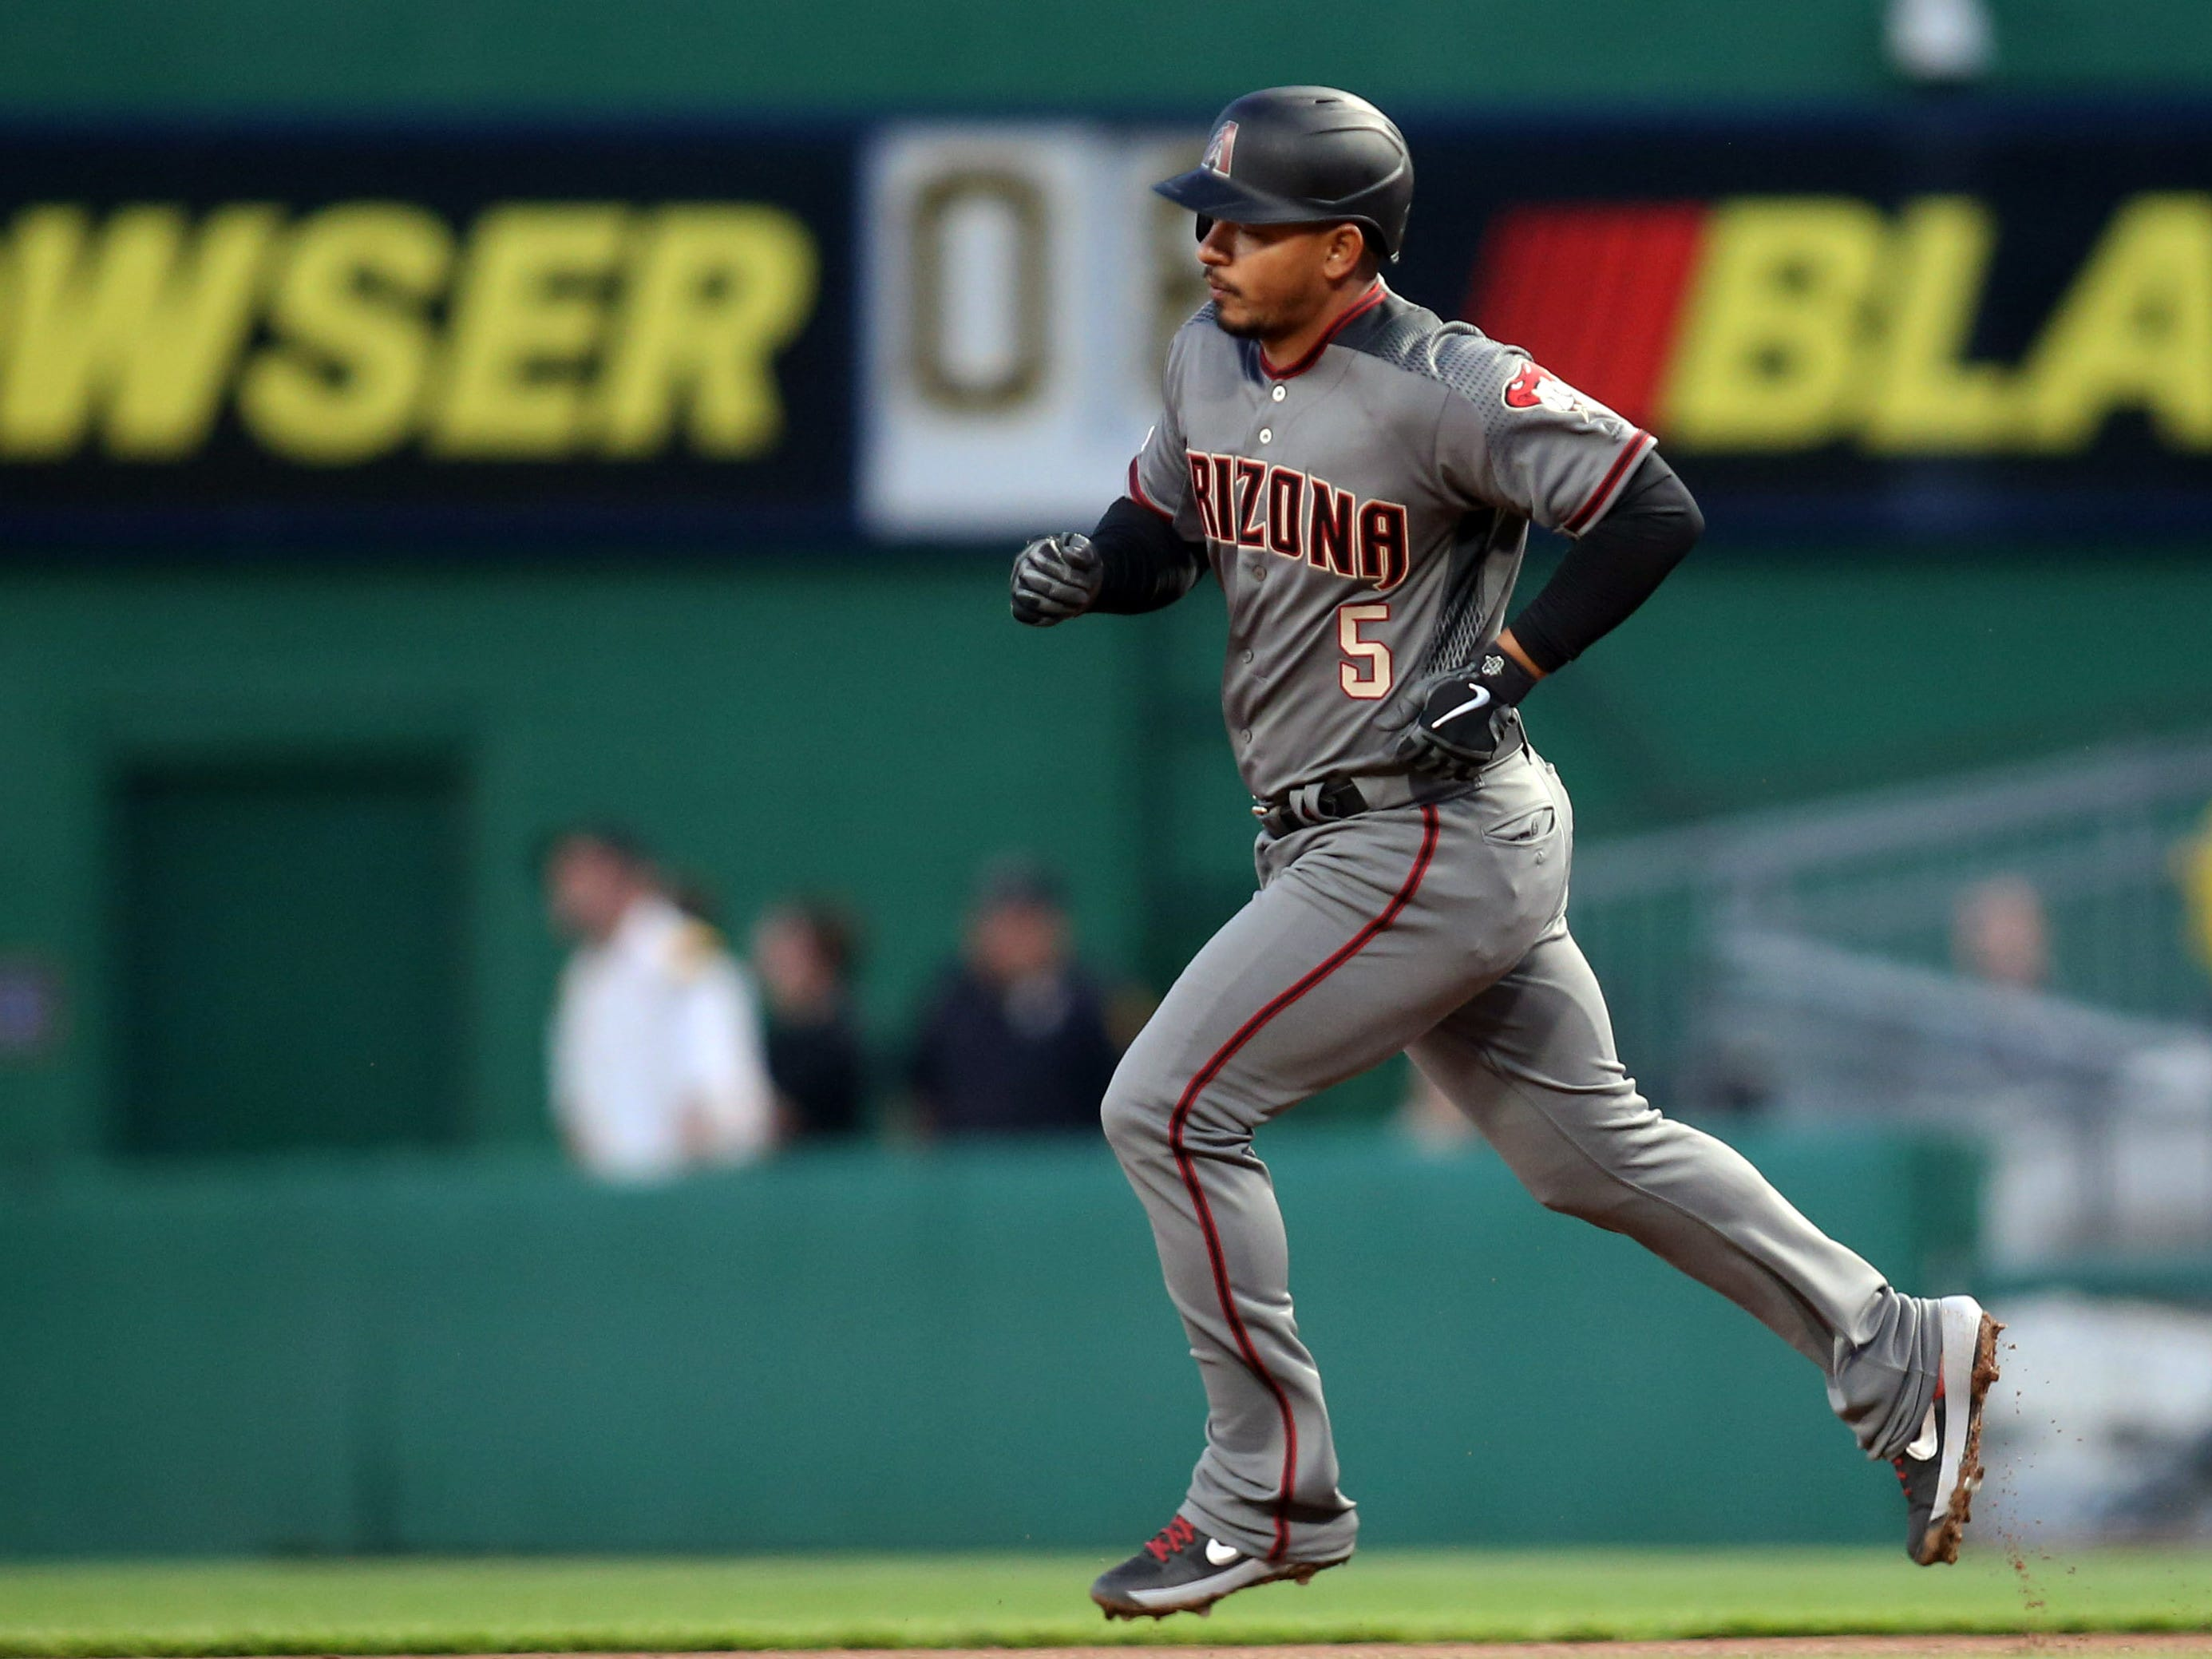 Apr 22, 2019; Pittsburgh, PA, USA;  Arizona Diamondbacks third baseman Eduardo Escobar (5) circles the bases on a solo home run against the Pittsburgh Pirates during the third inning at PNC Park.